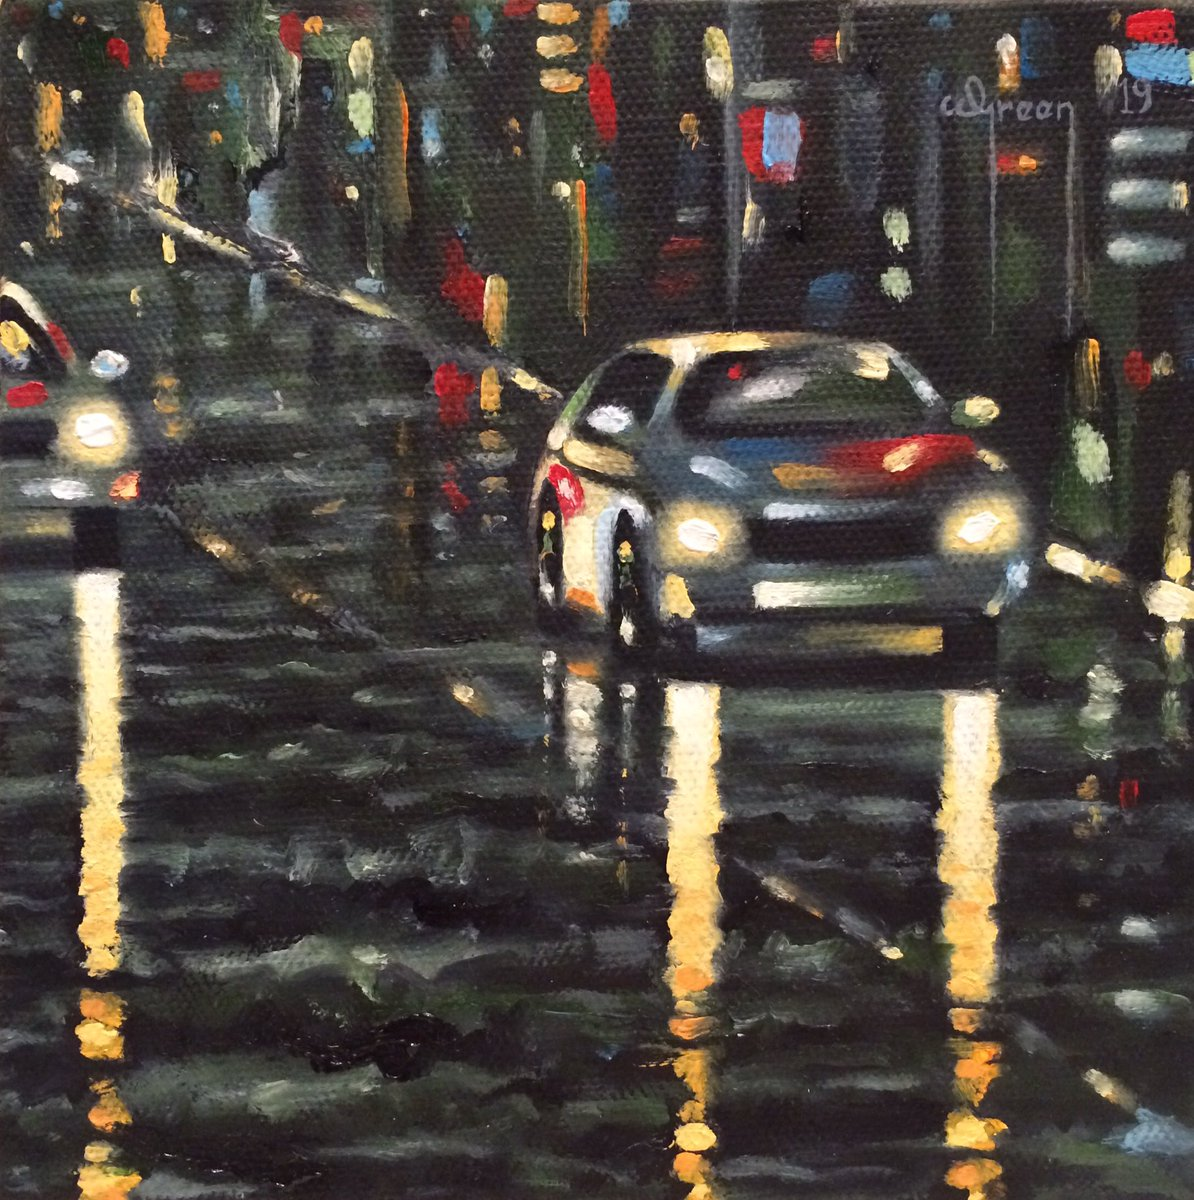 New painting for sale titled, 'Midnight Cityscape' 15cm x 15cm x 4cm oil on stretched canvas 👍 For further details PM me or email info@warrengreenartist.co.uk http://www.warrengreenartist.co.uk  #art #artist #painting #painter #oilpainting #artforsale #cityscape #newyork #cars #newart